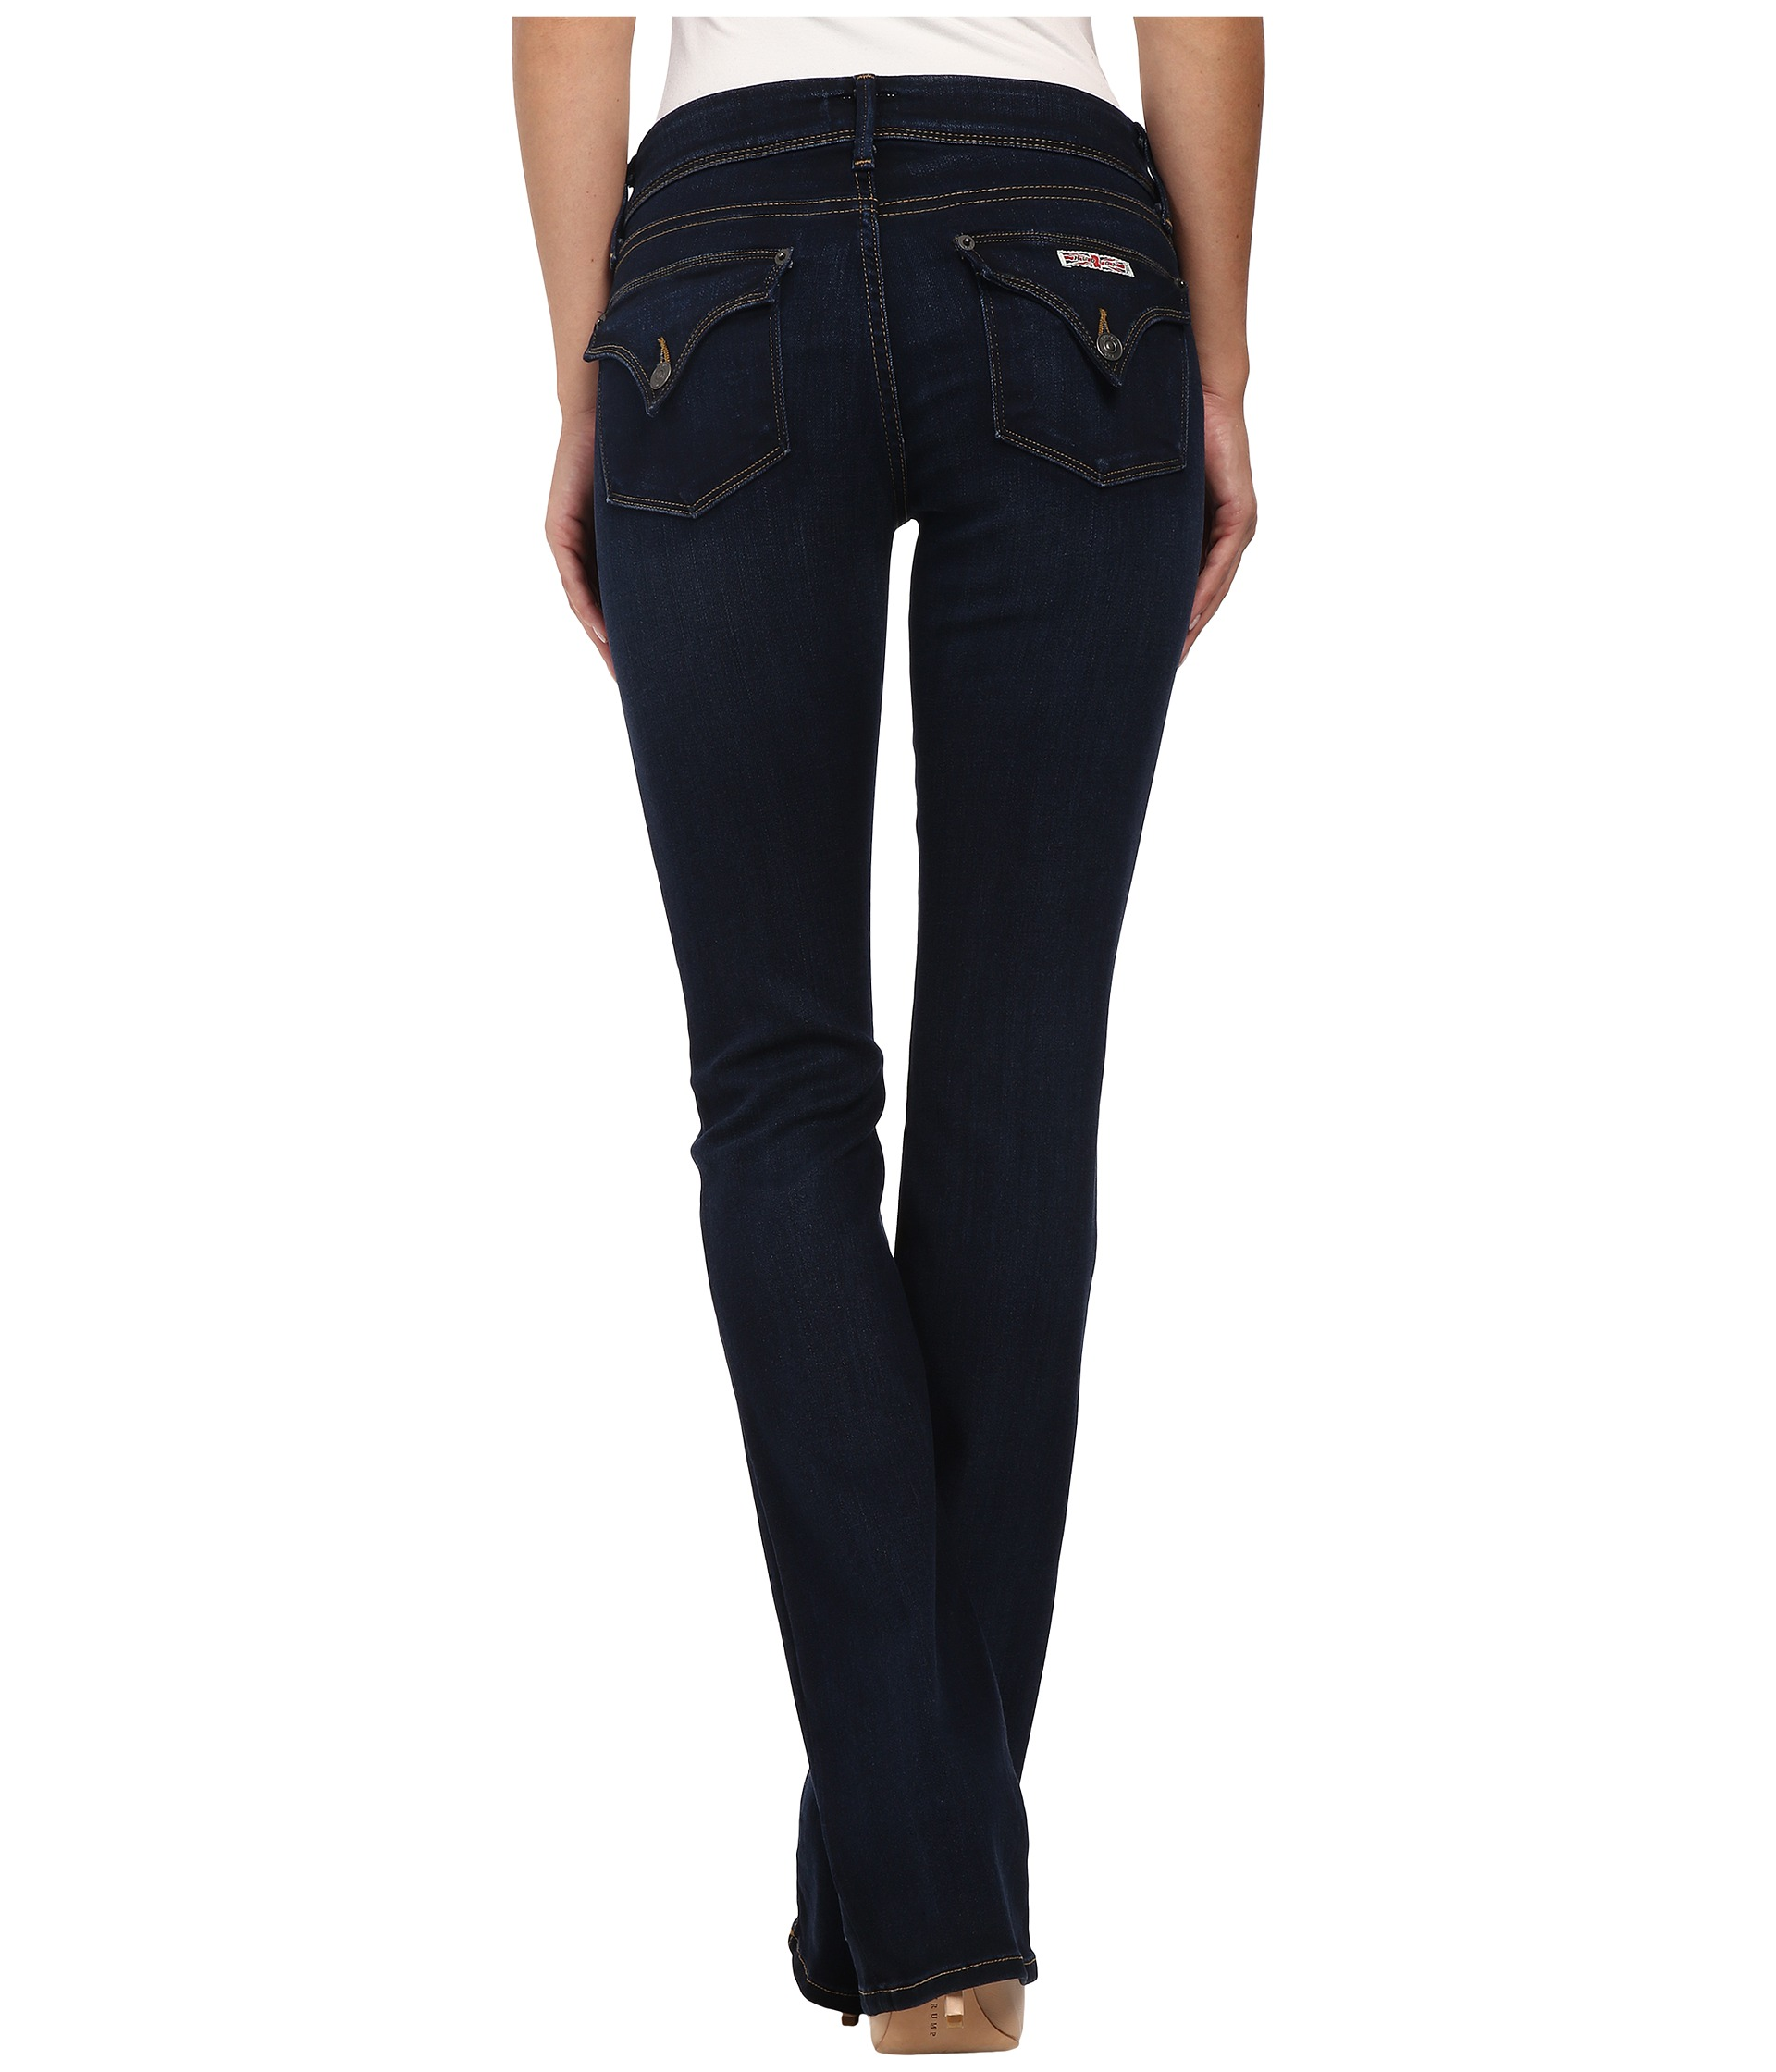 Hudson Beth Baby Boot Jeans In Oracle At Zappos Com